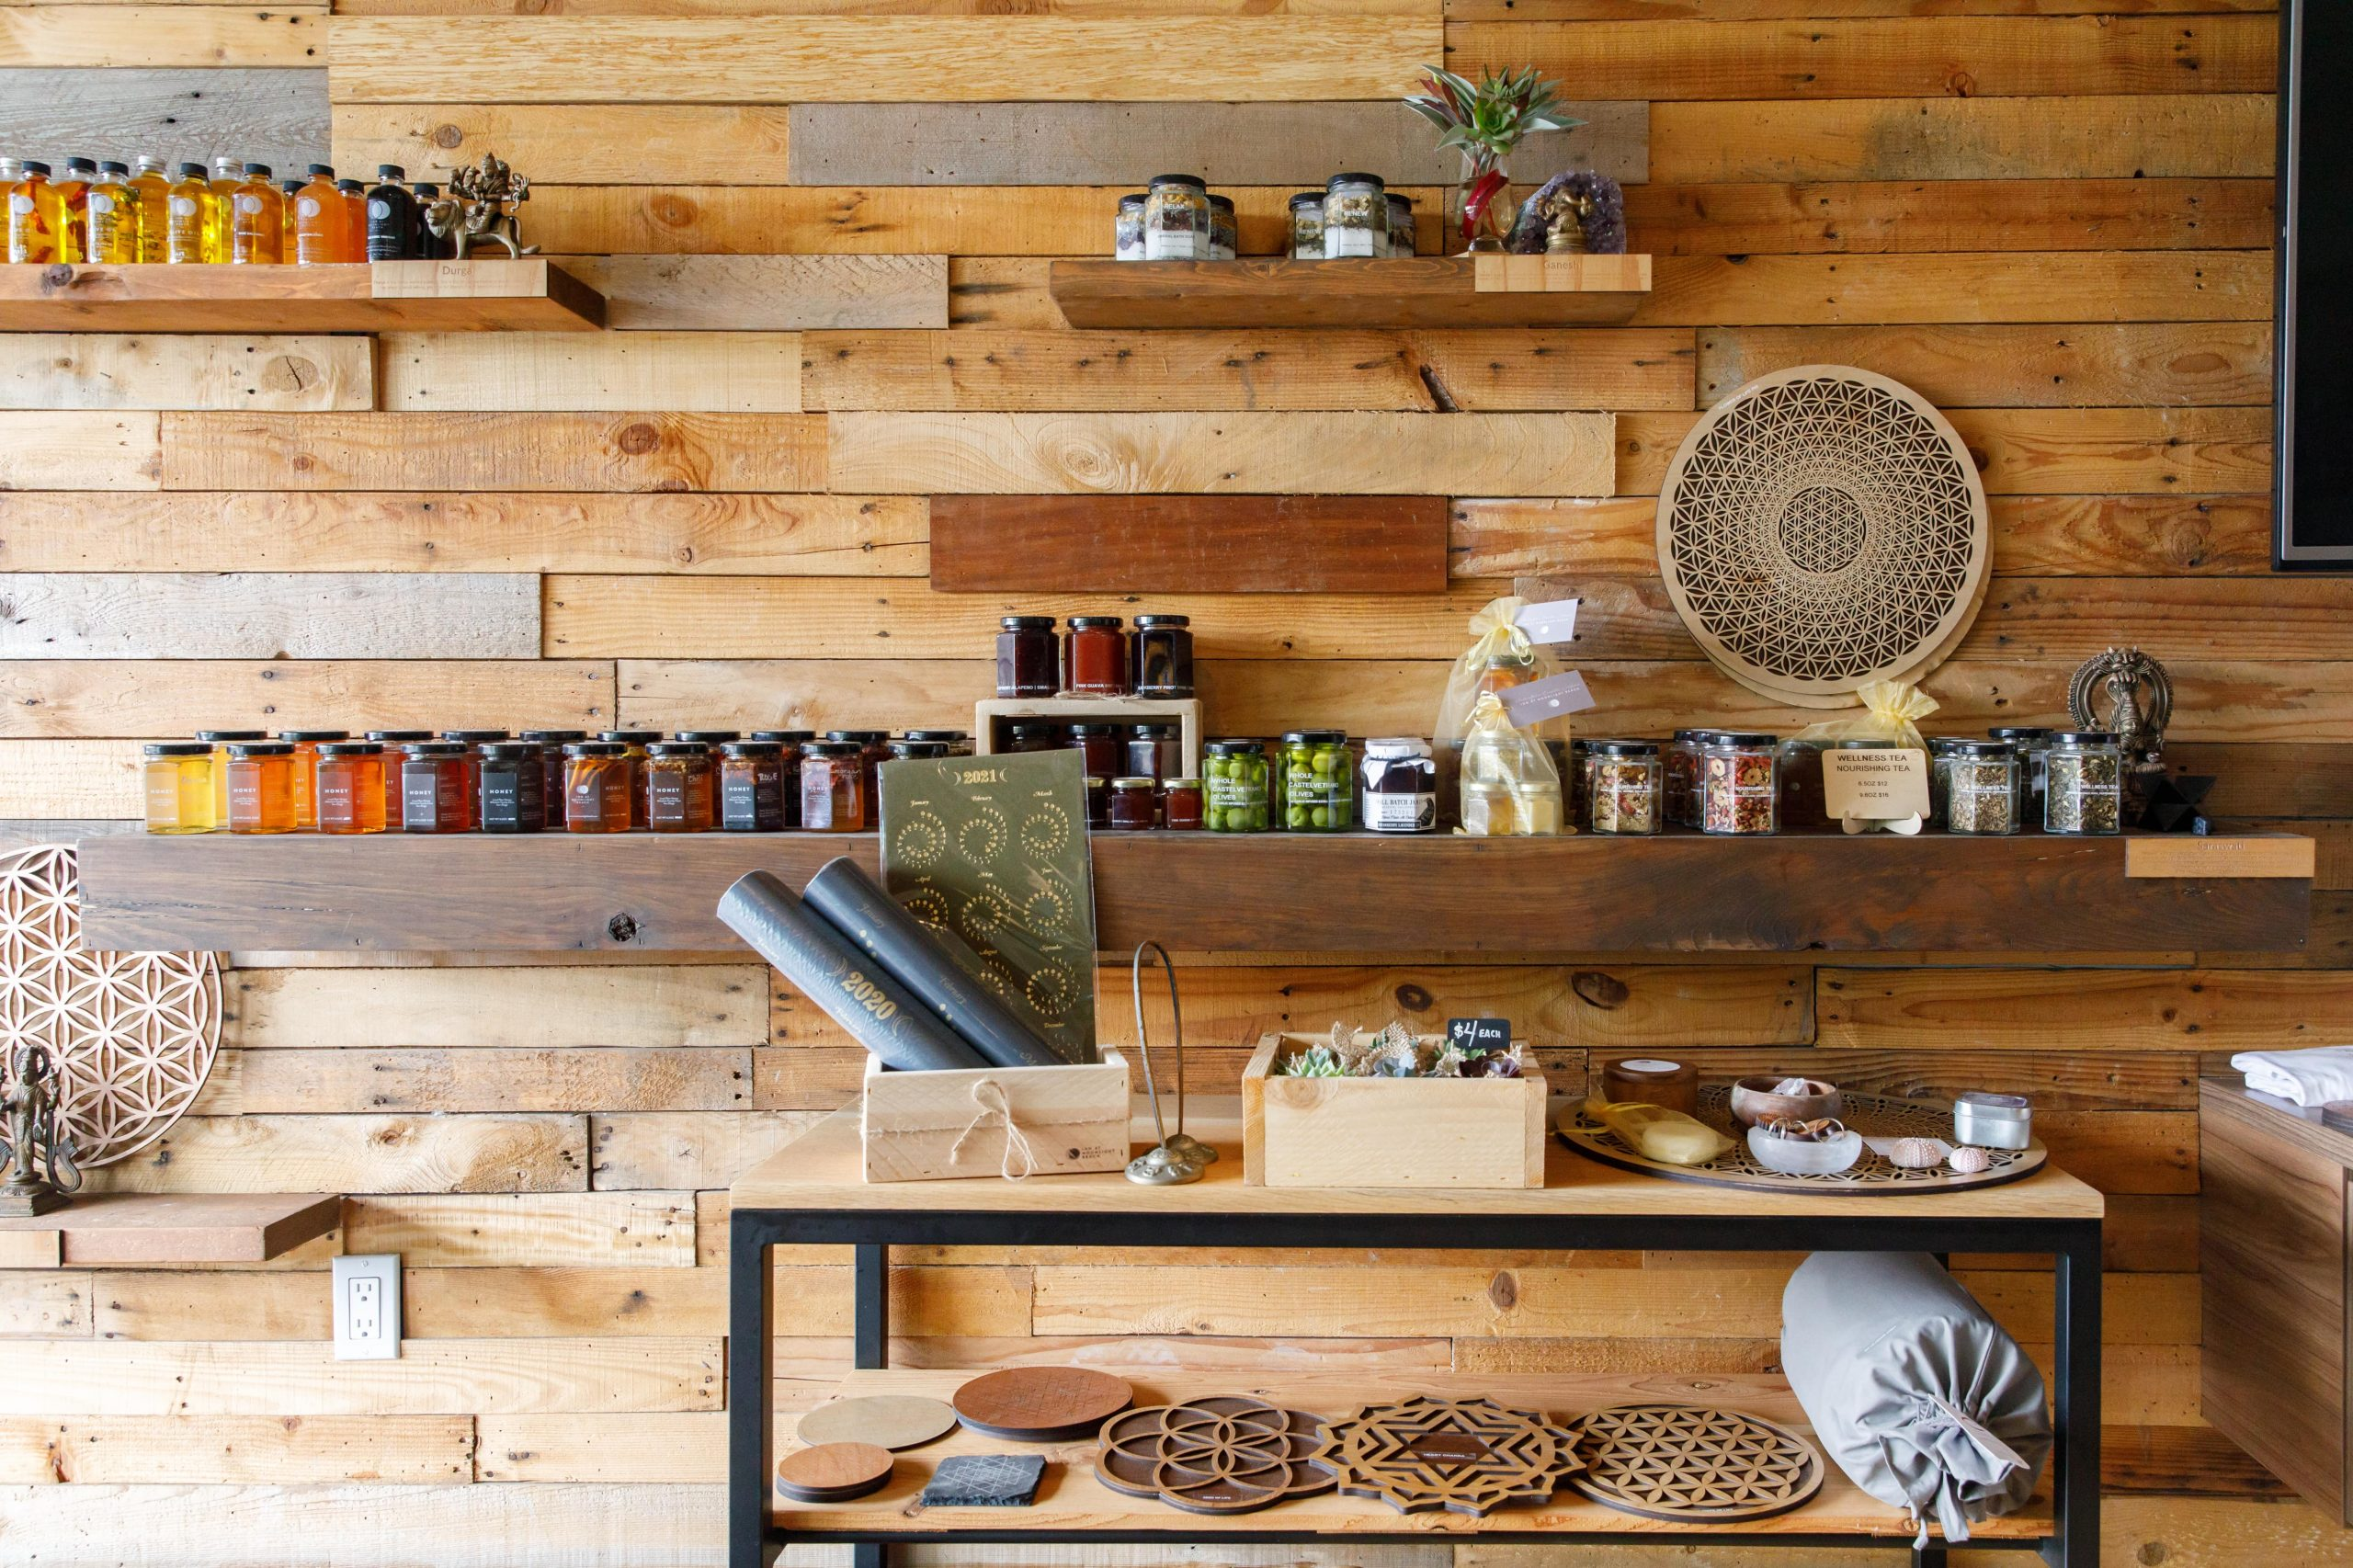 Honey and spice rack